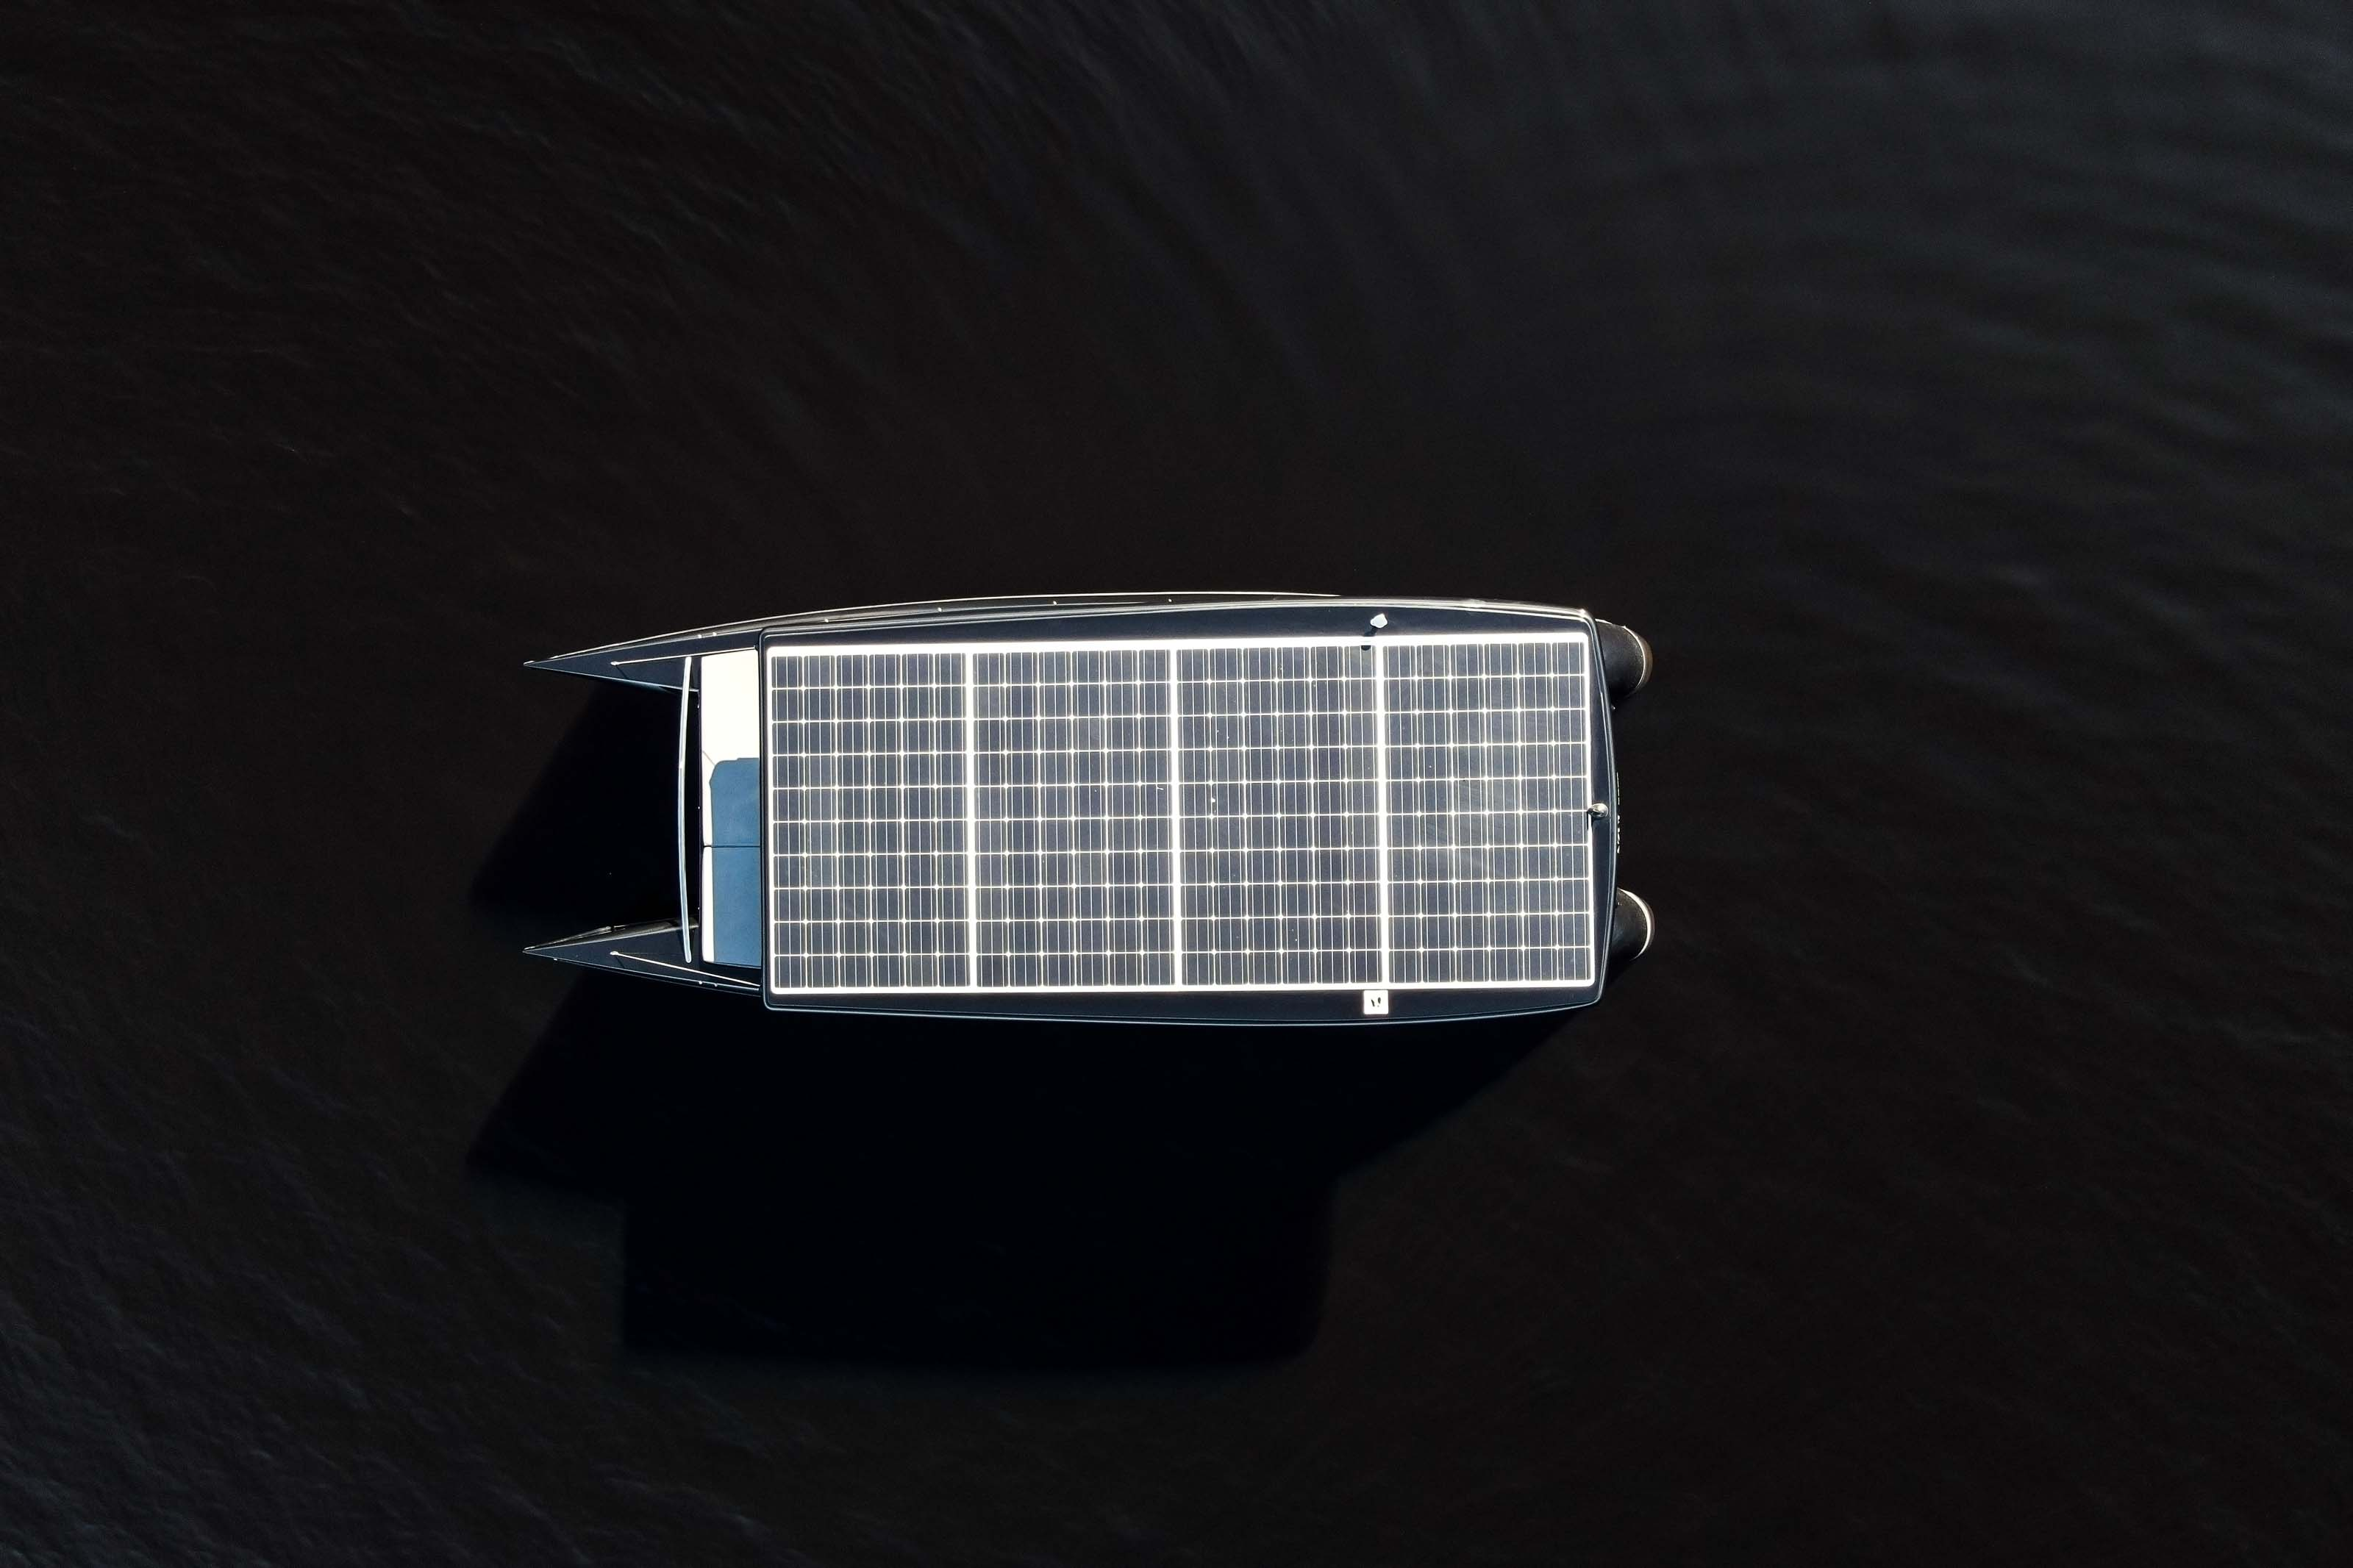 solar boat from above